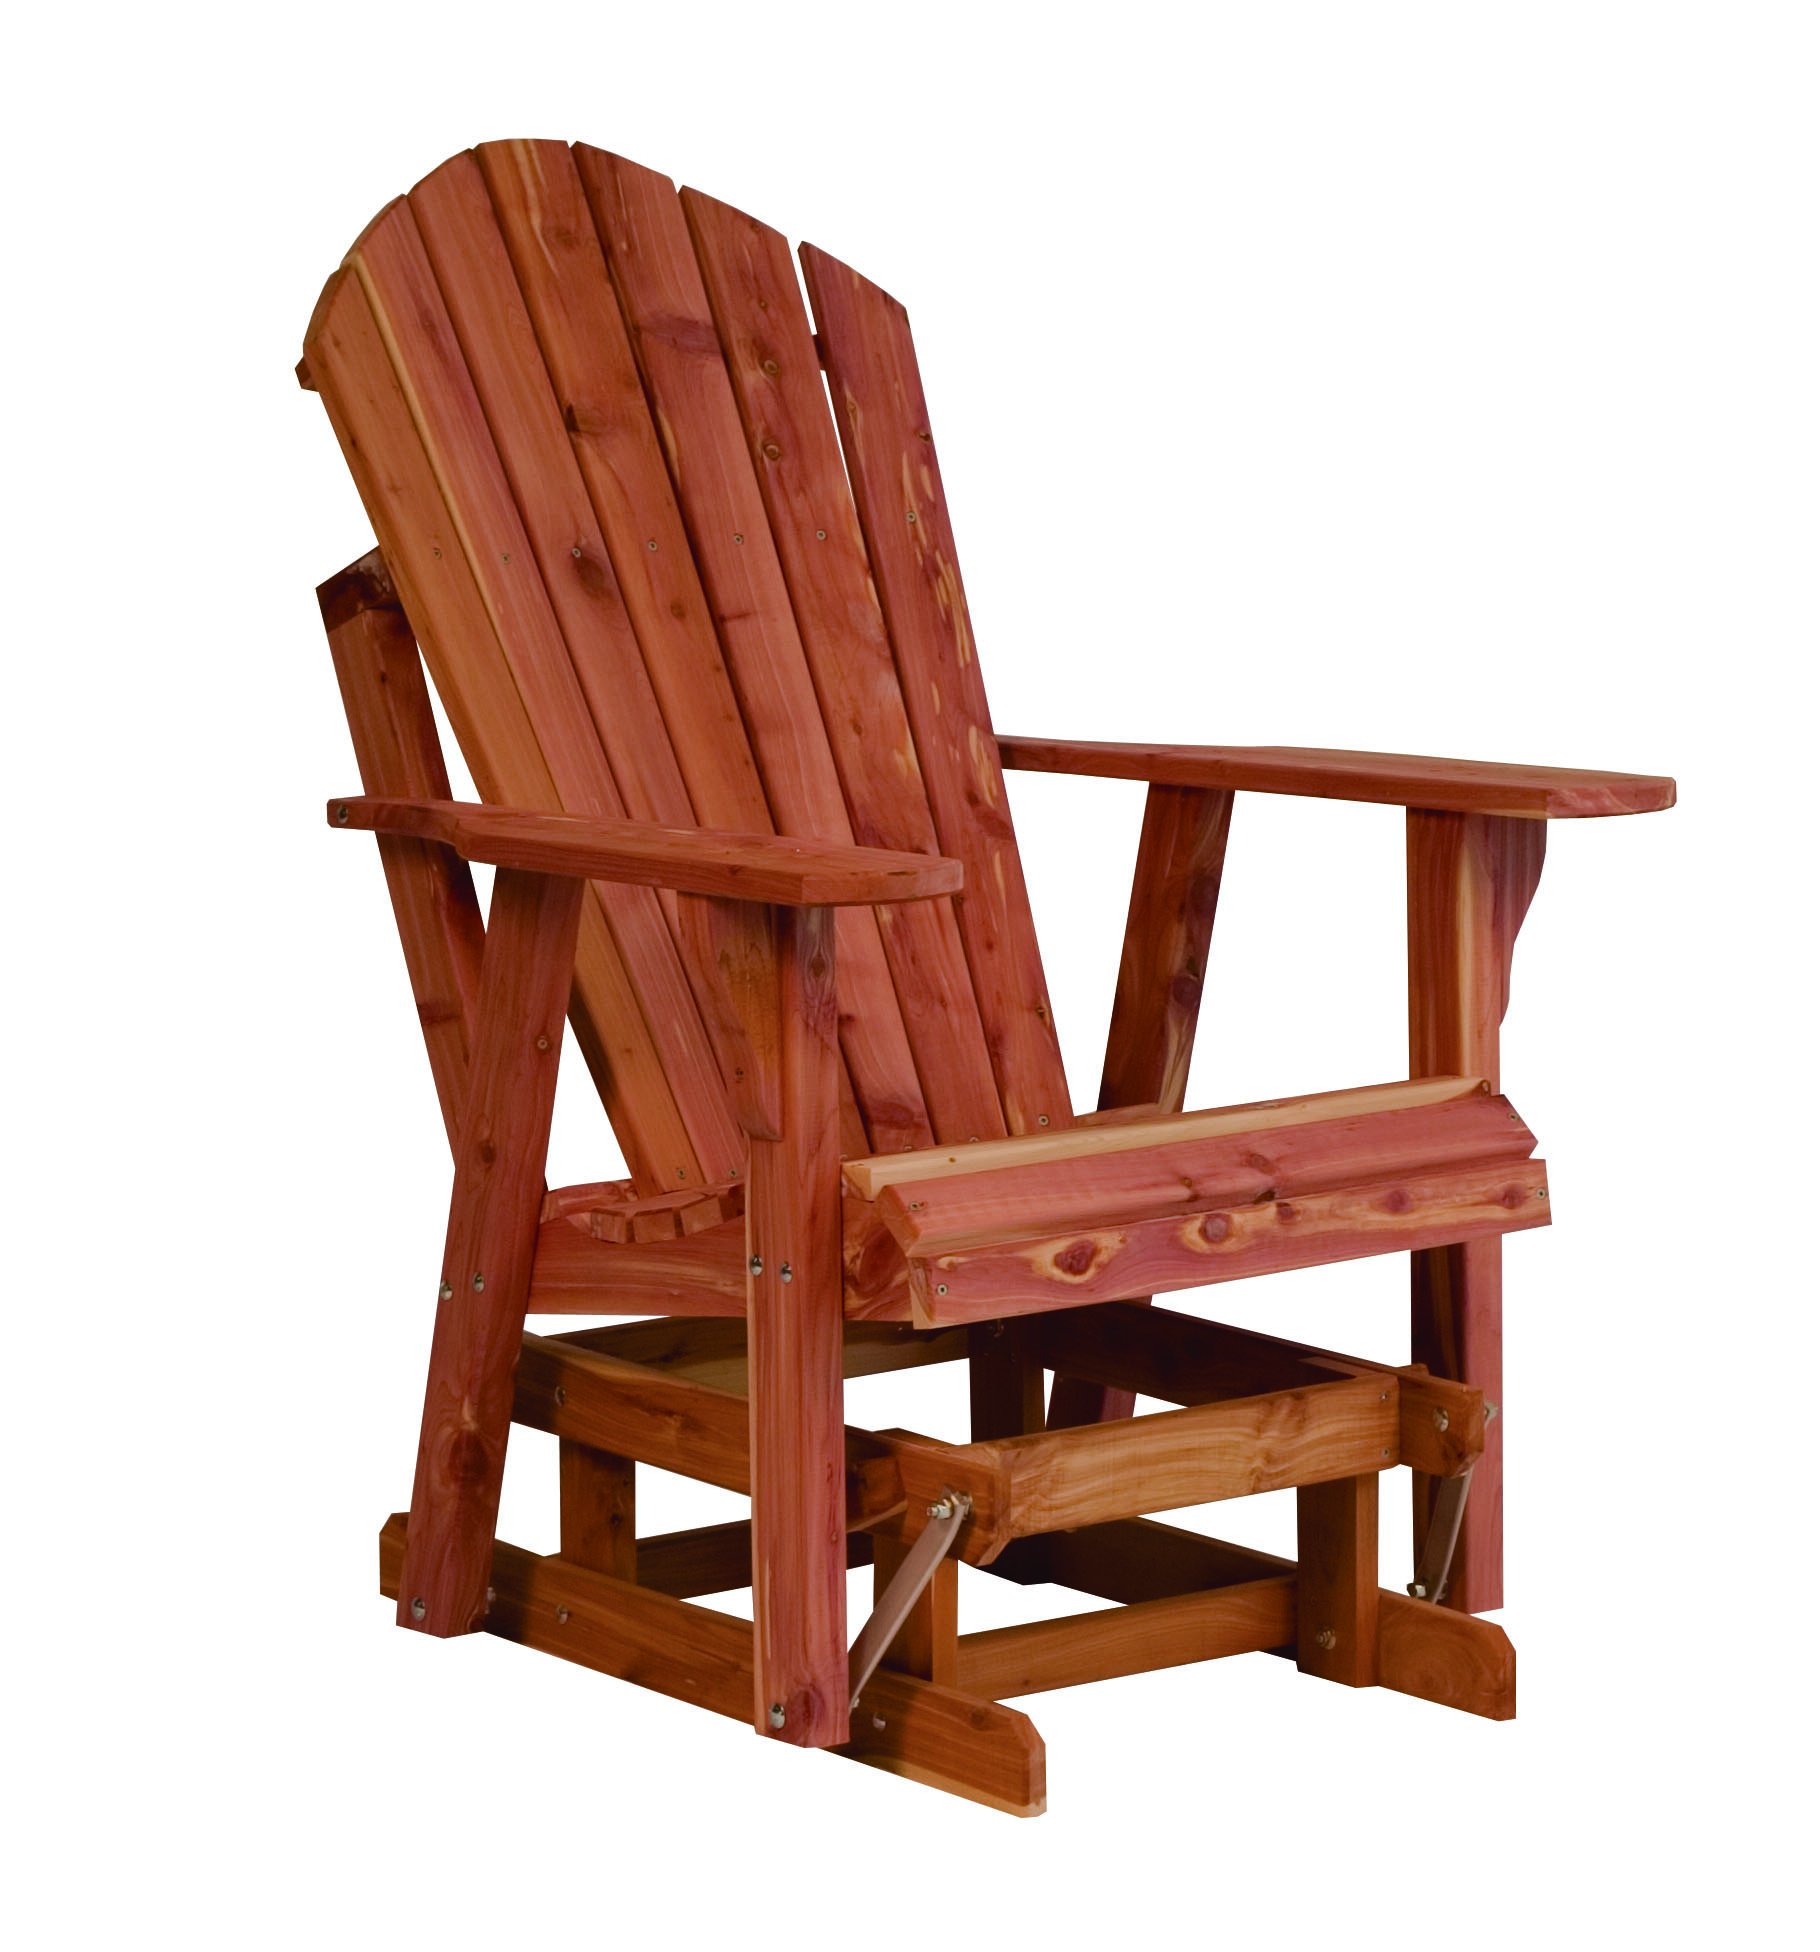 young-couple-adirondack-swinging-chair-plans-black